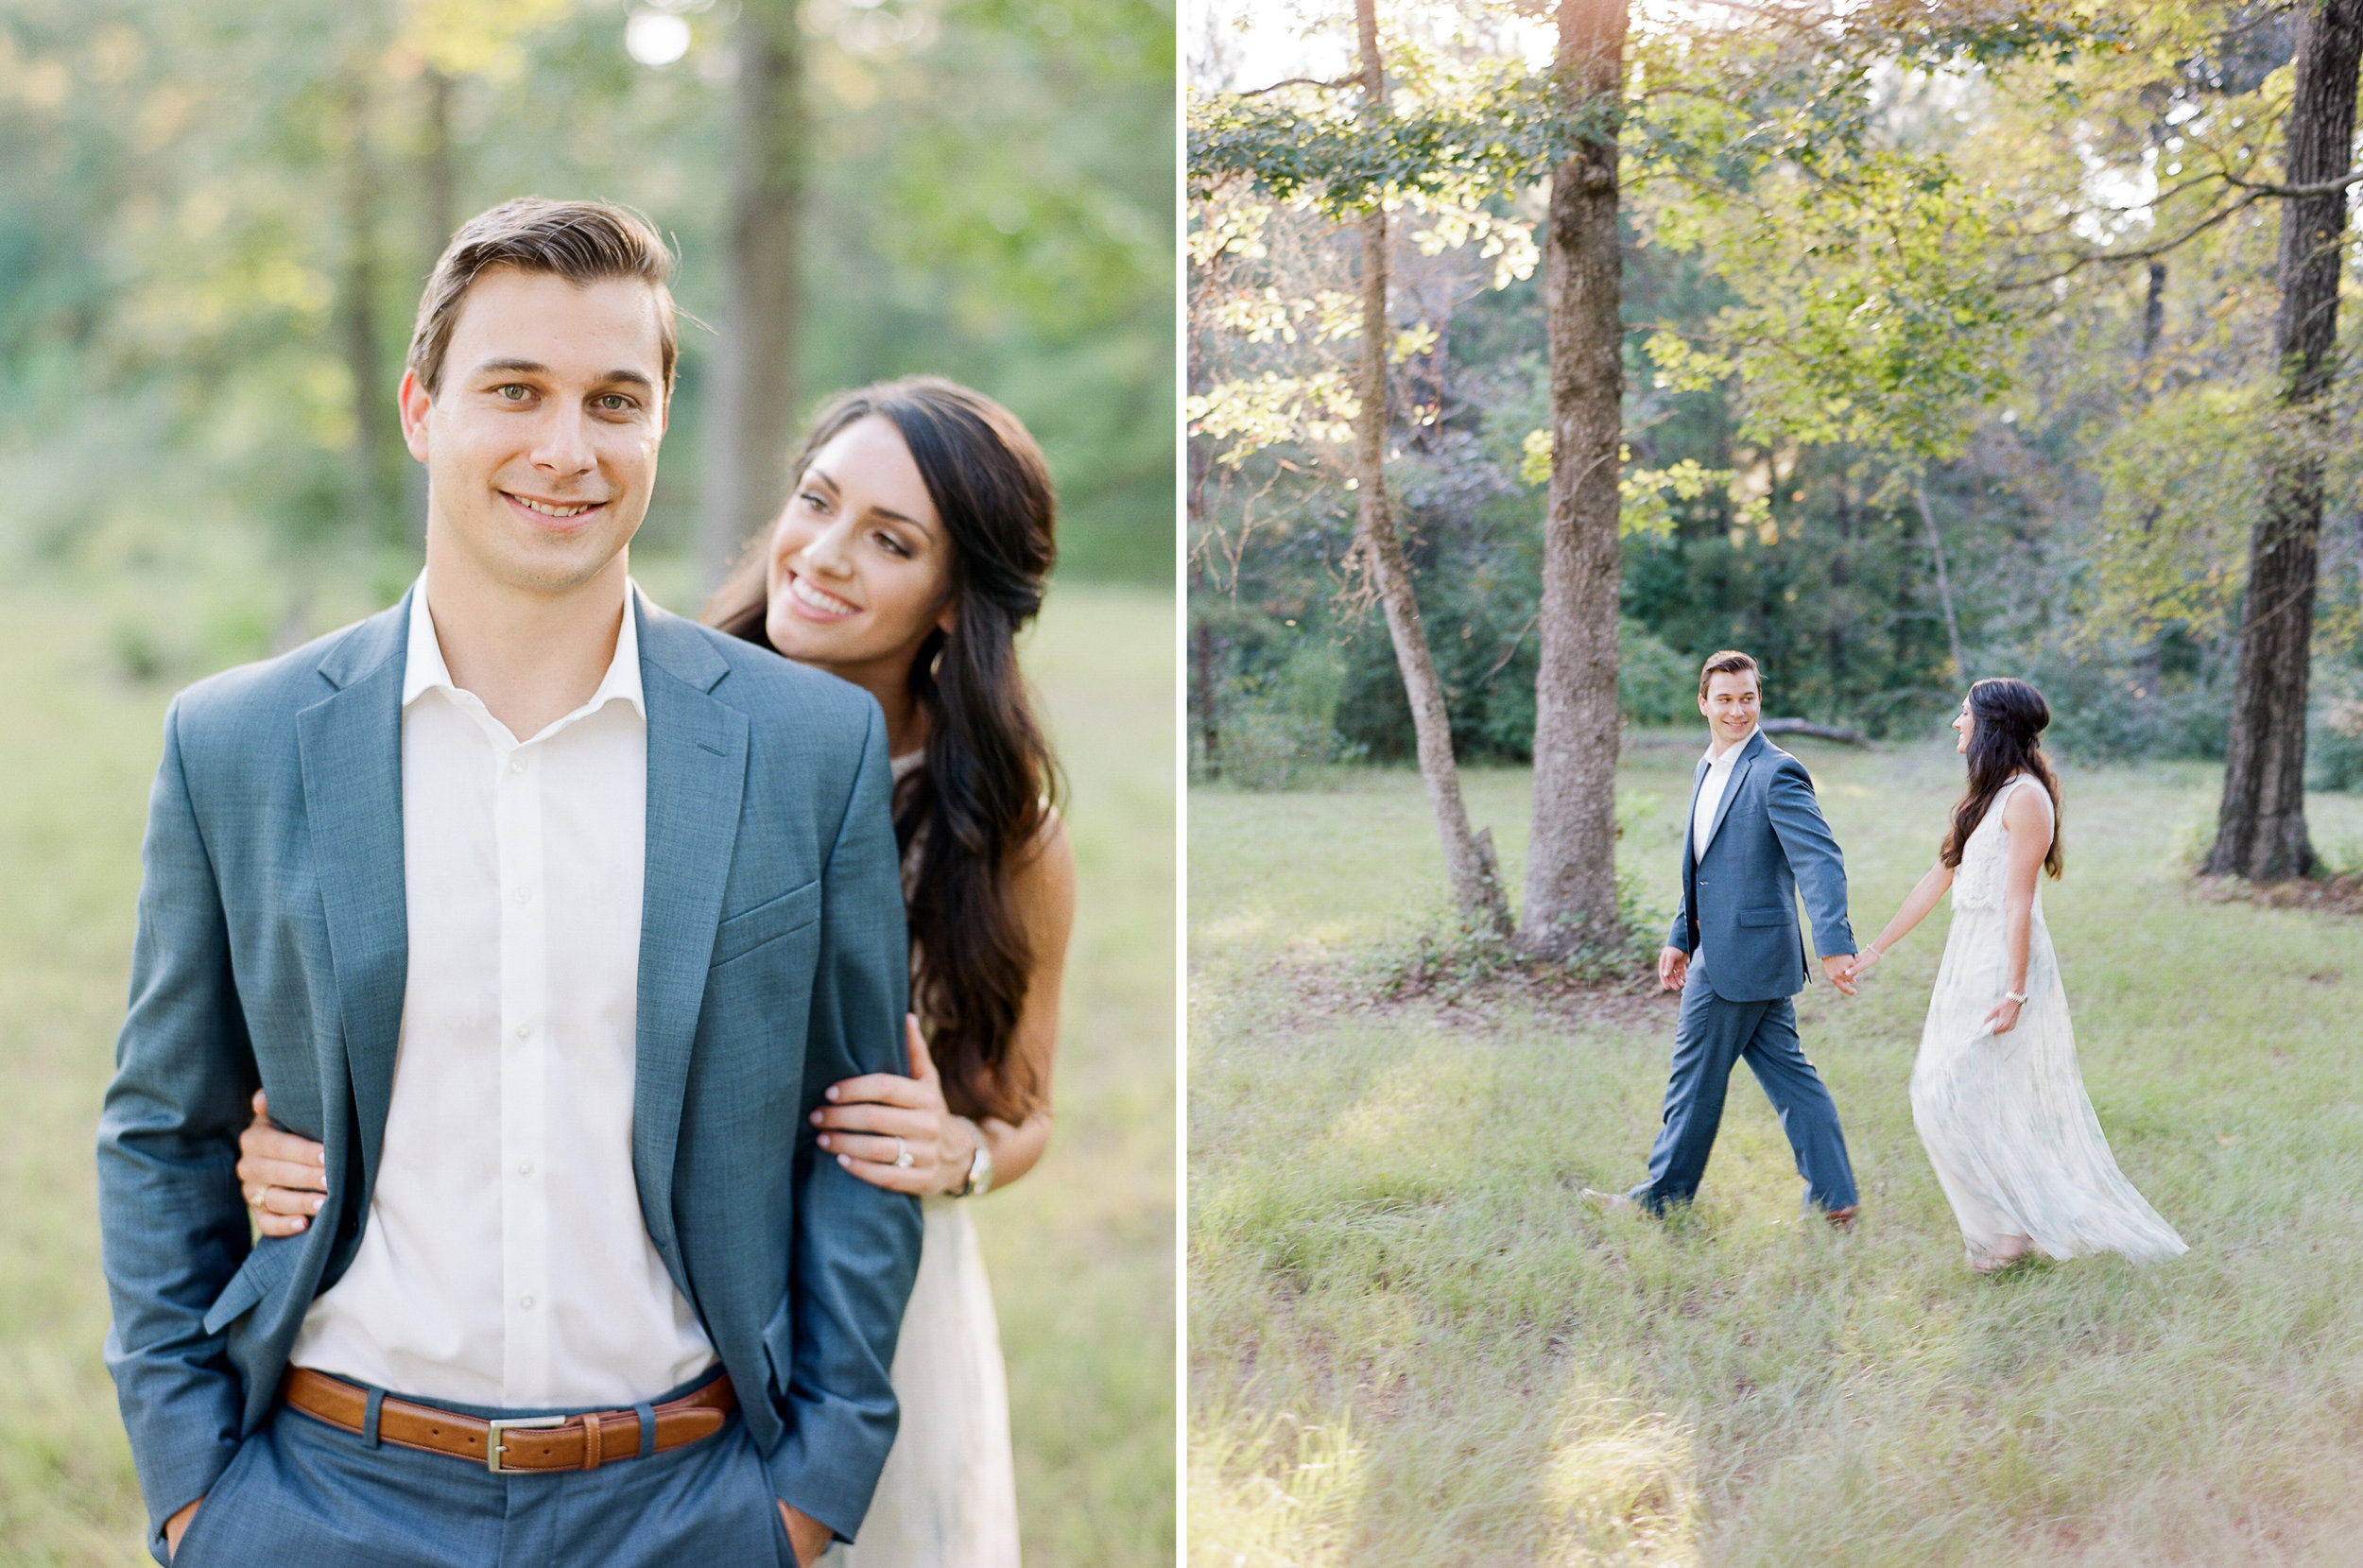 houston-wedding-photographer-engagements-engagement-session-houston-portrait-photographer-film-austin-wedding-photography-120.jpg